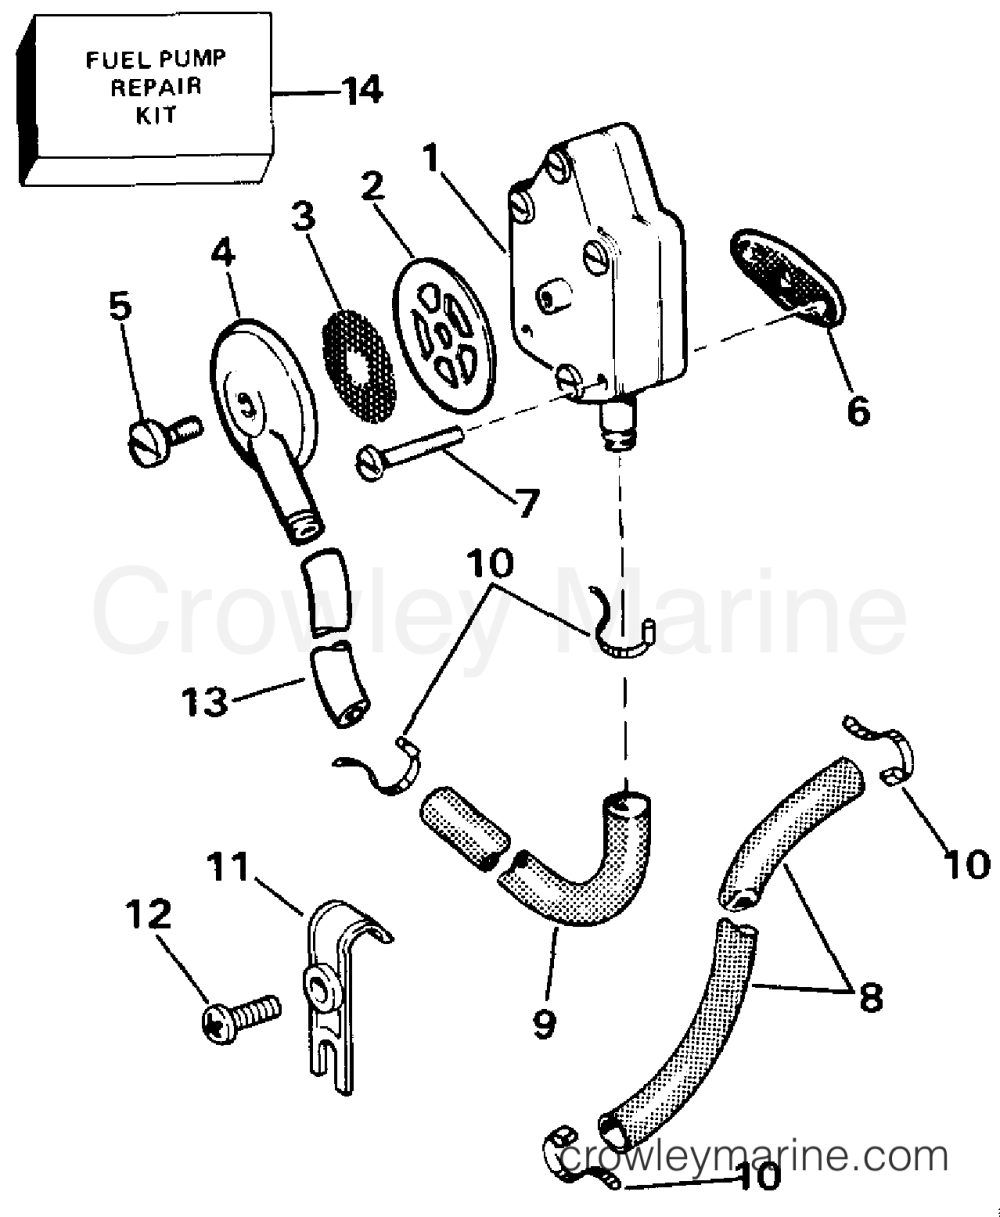 medium resolution of johnson 15 fuel pump diagram wiring diagram third level johnson 15 fuel pump diagram